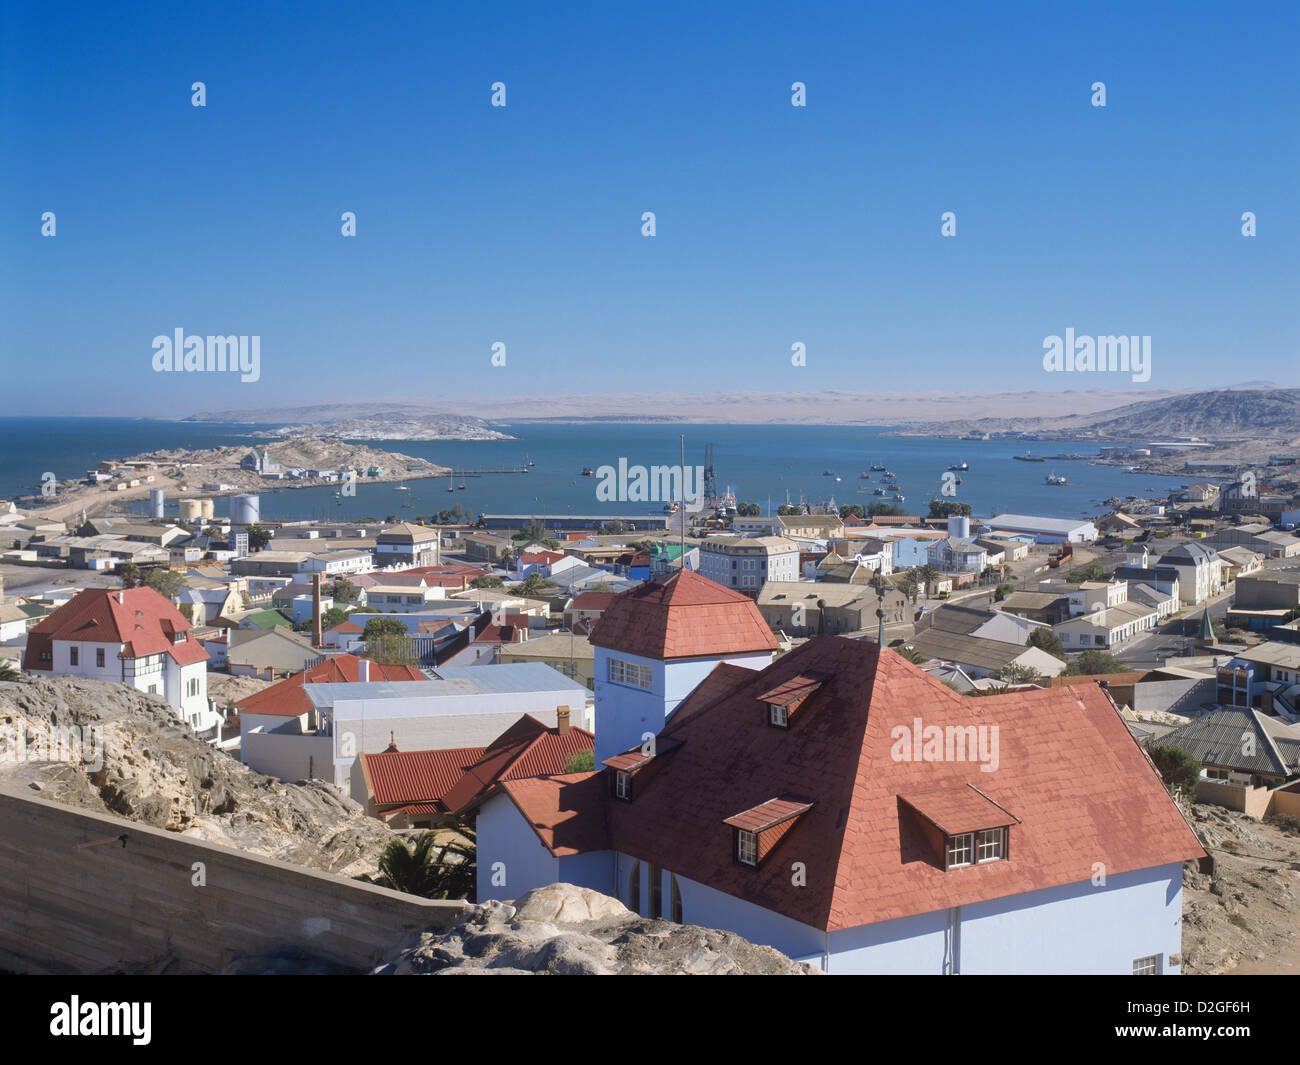 Republic of Namibia, Lüderitz, view of the rocky port town, dating back from german colonial times - Stock Image